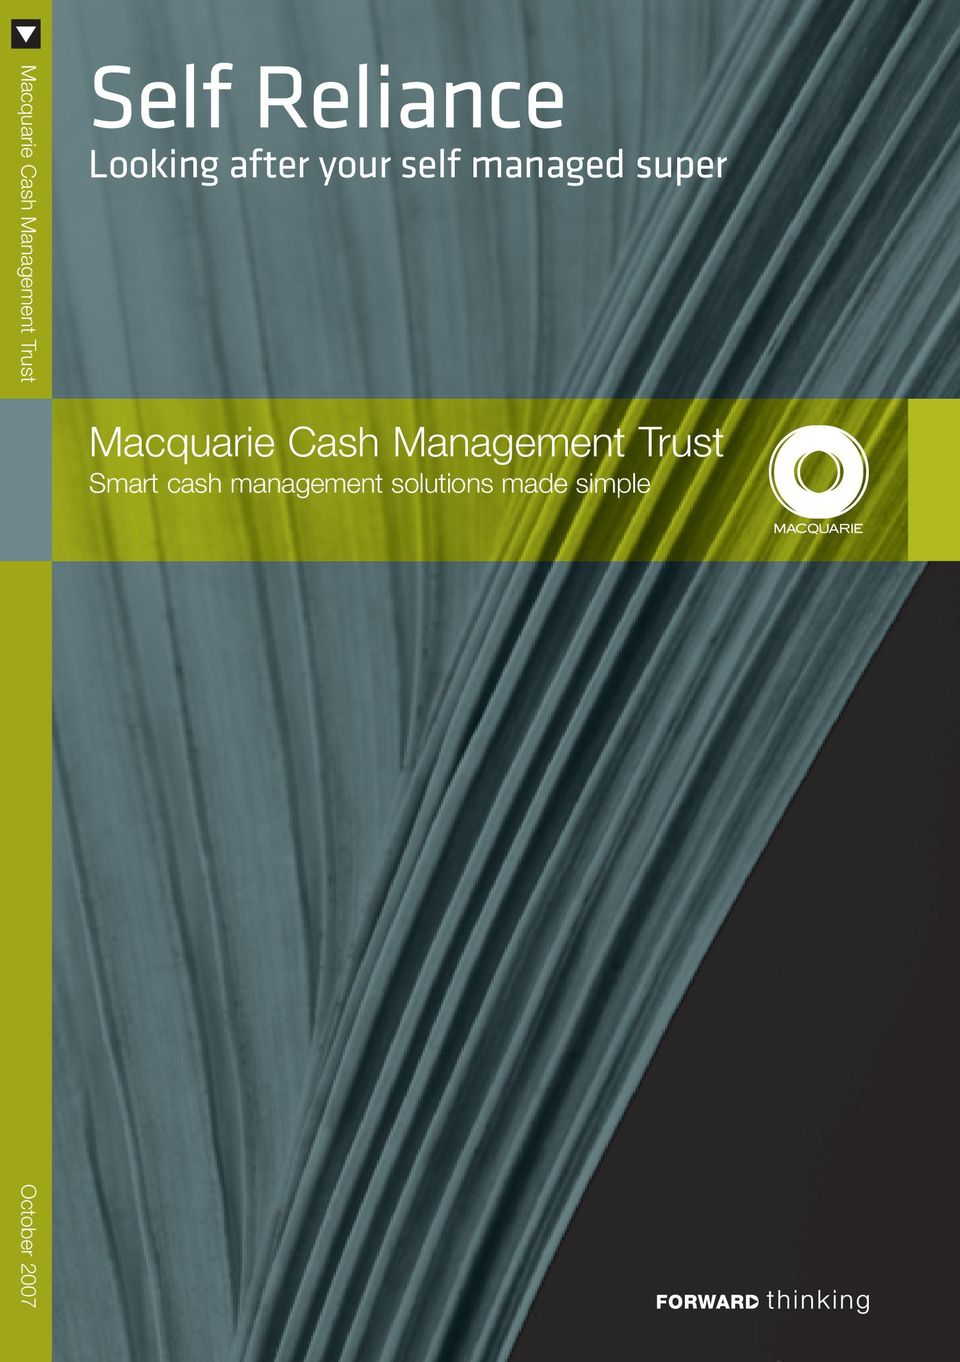 super Macquarie Cash Management Trust